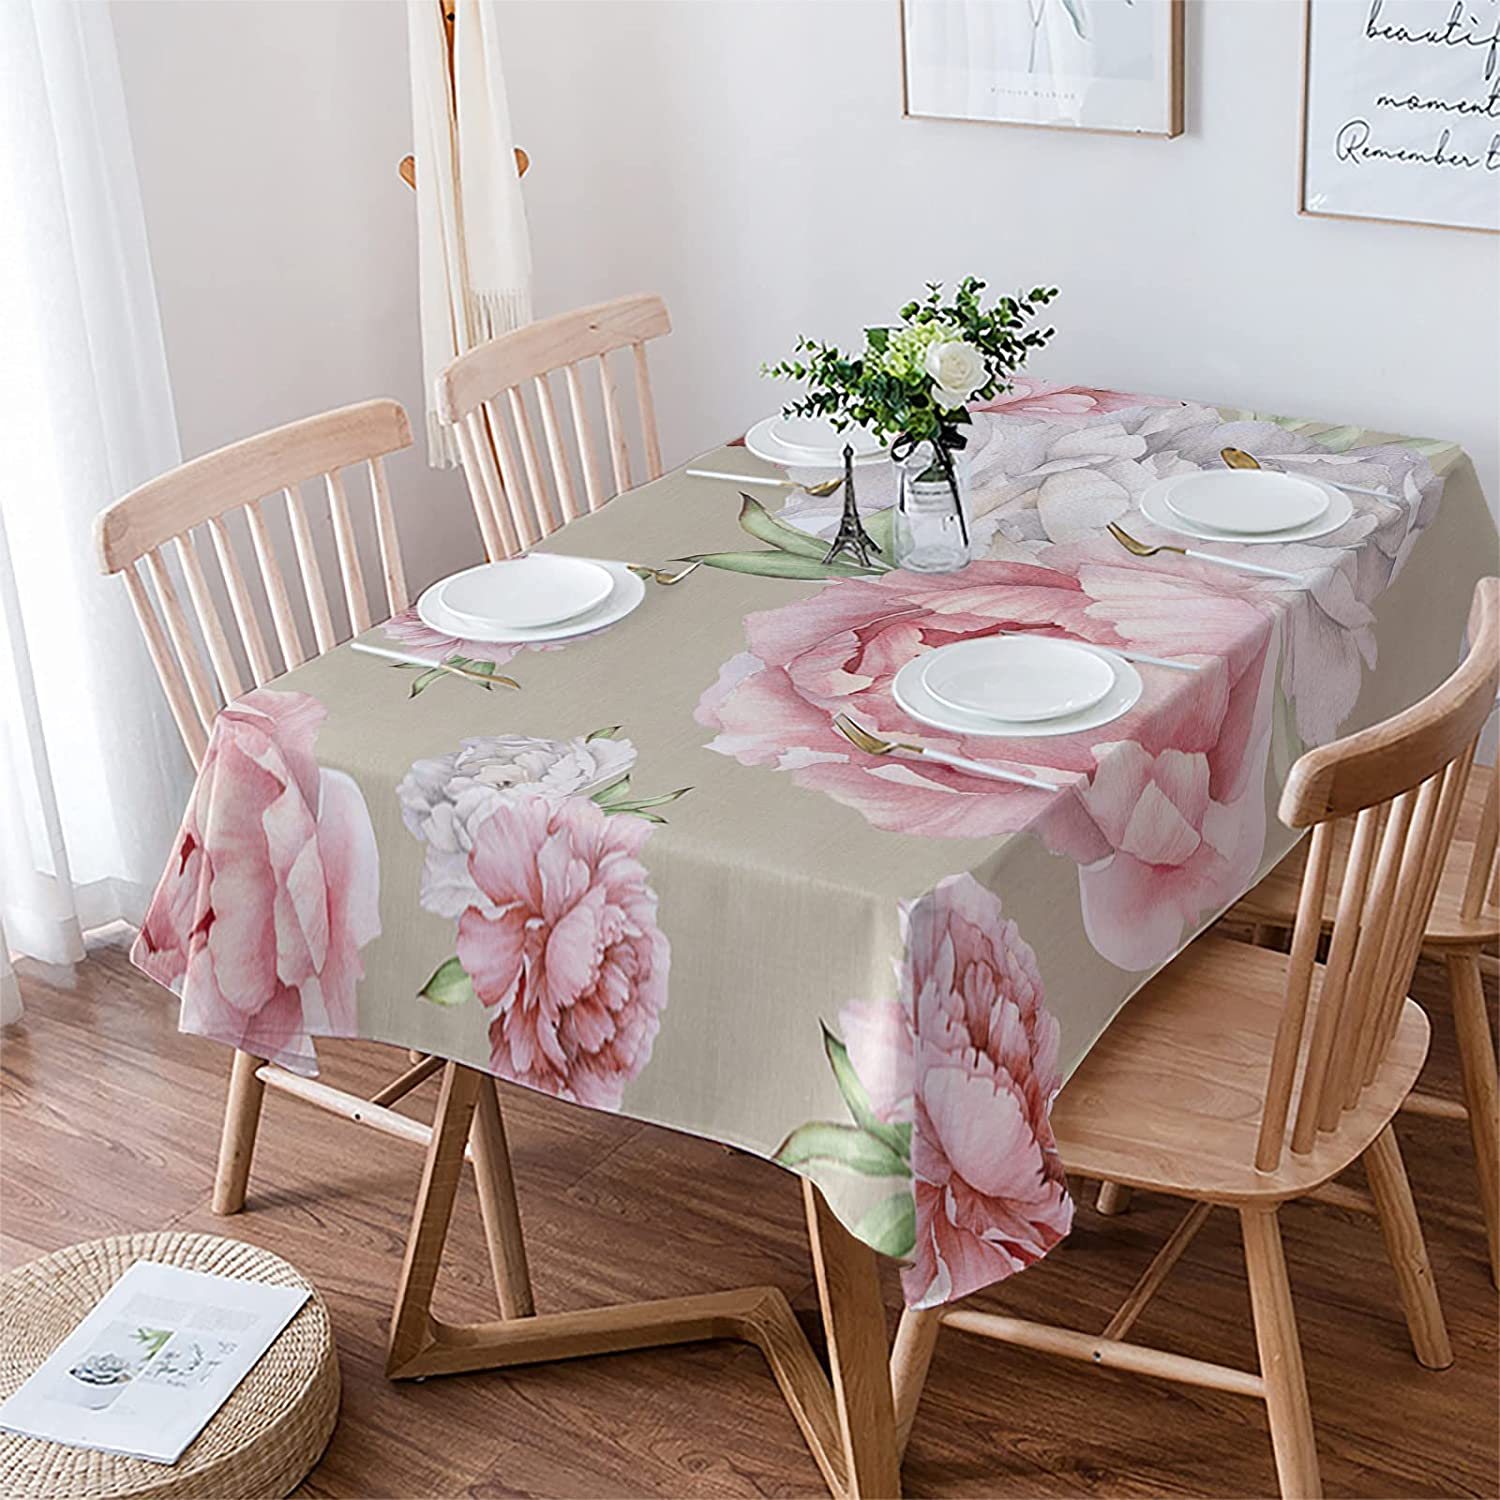 Tablecloths-53x70In Ultra Now free shipping Soft Cotton Product Linen Table F CoverVintage